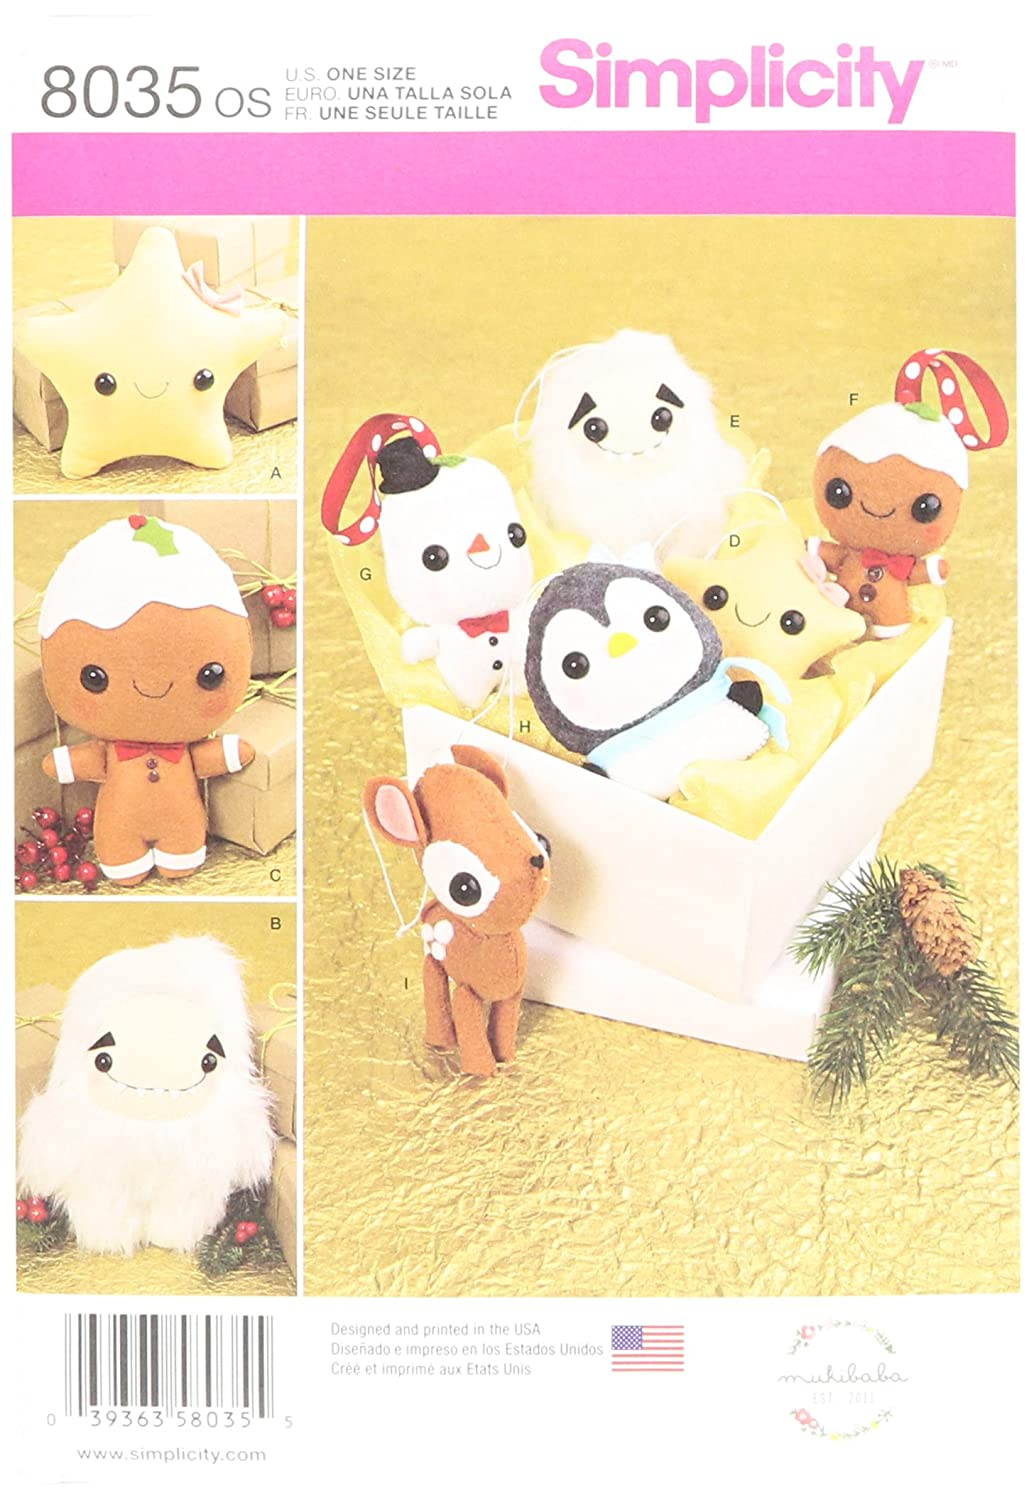 Simplicity US8035OS Patterns Stuffed Animals Ornaments Size: Os (One Size), 8035 OUTLOOK GROUP CORP